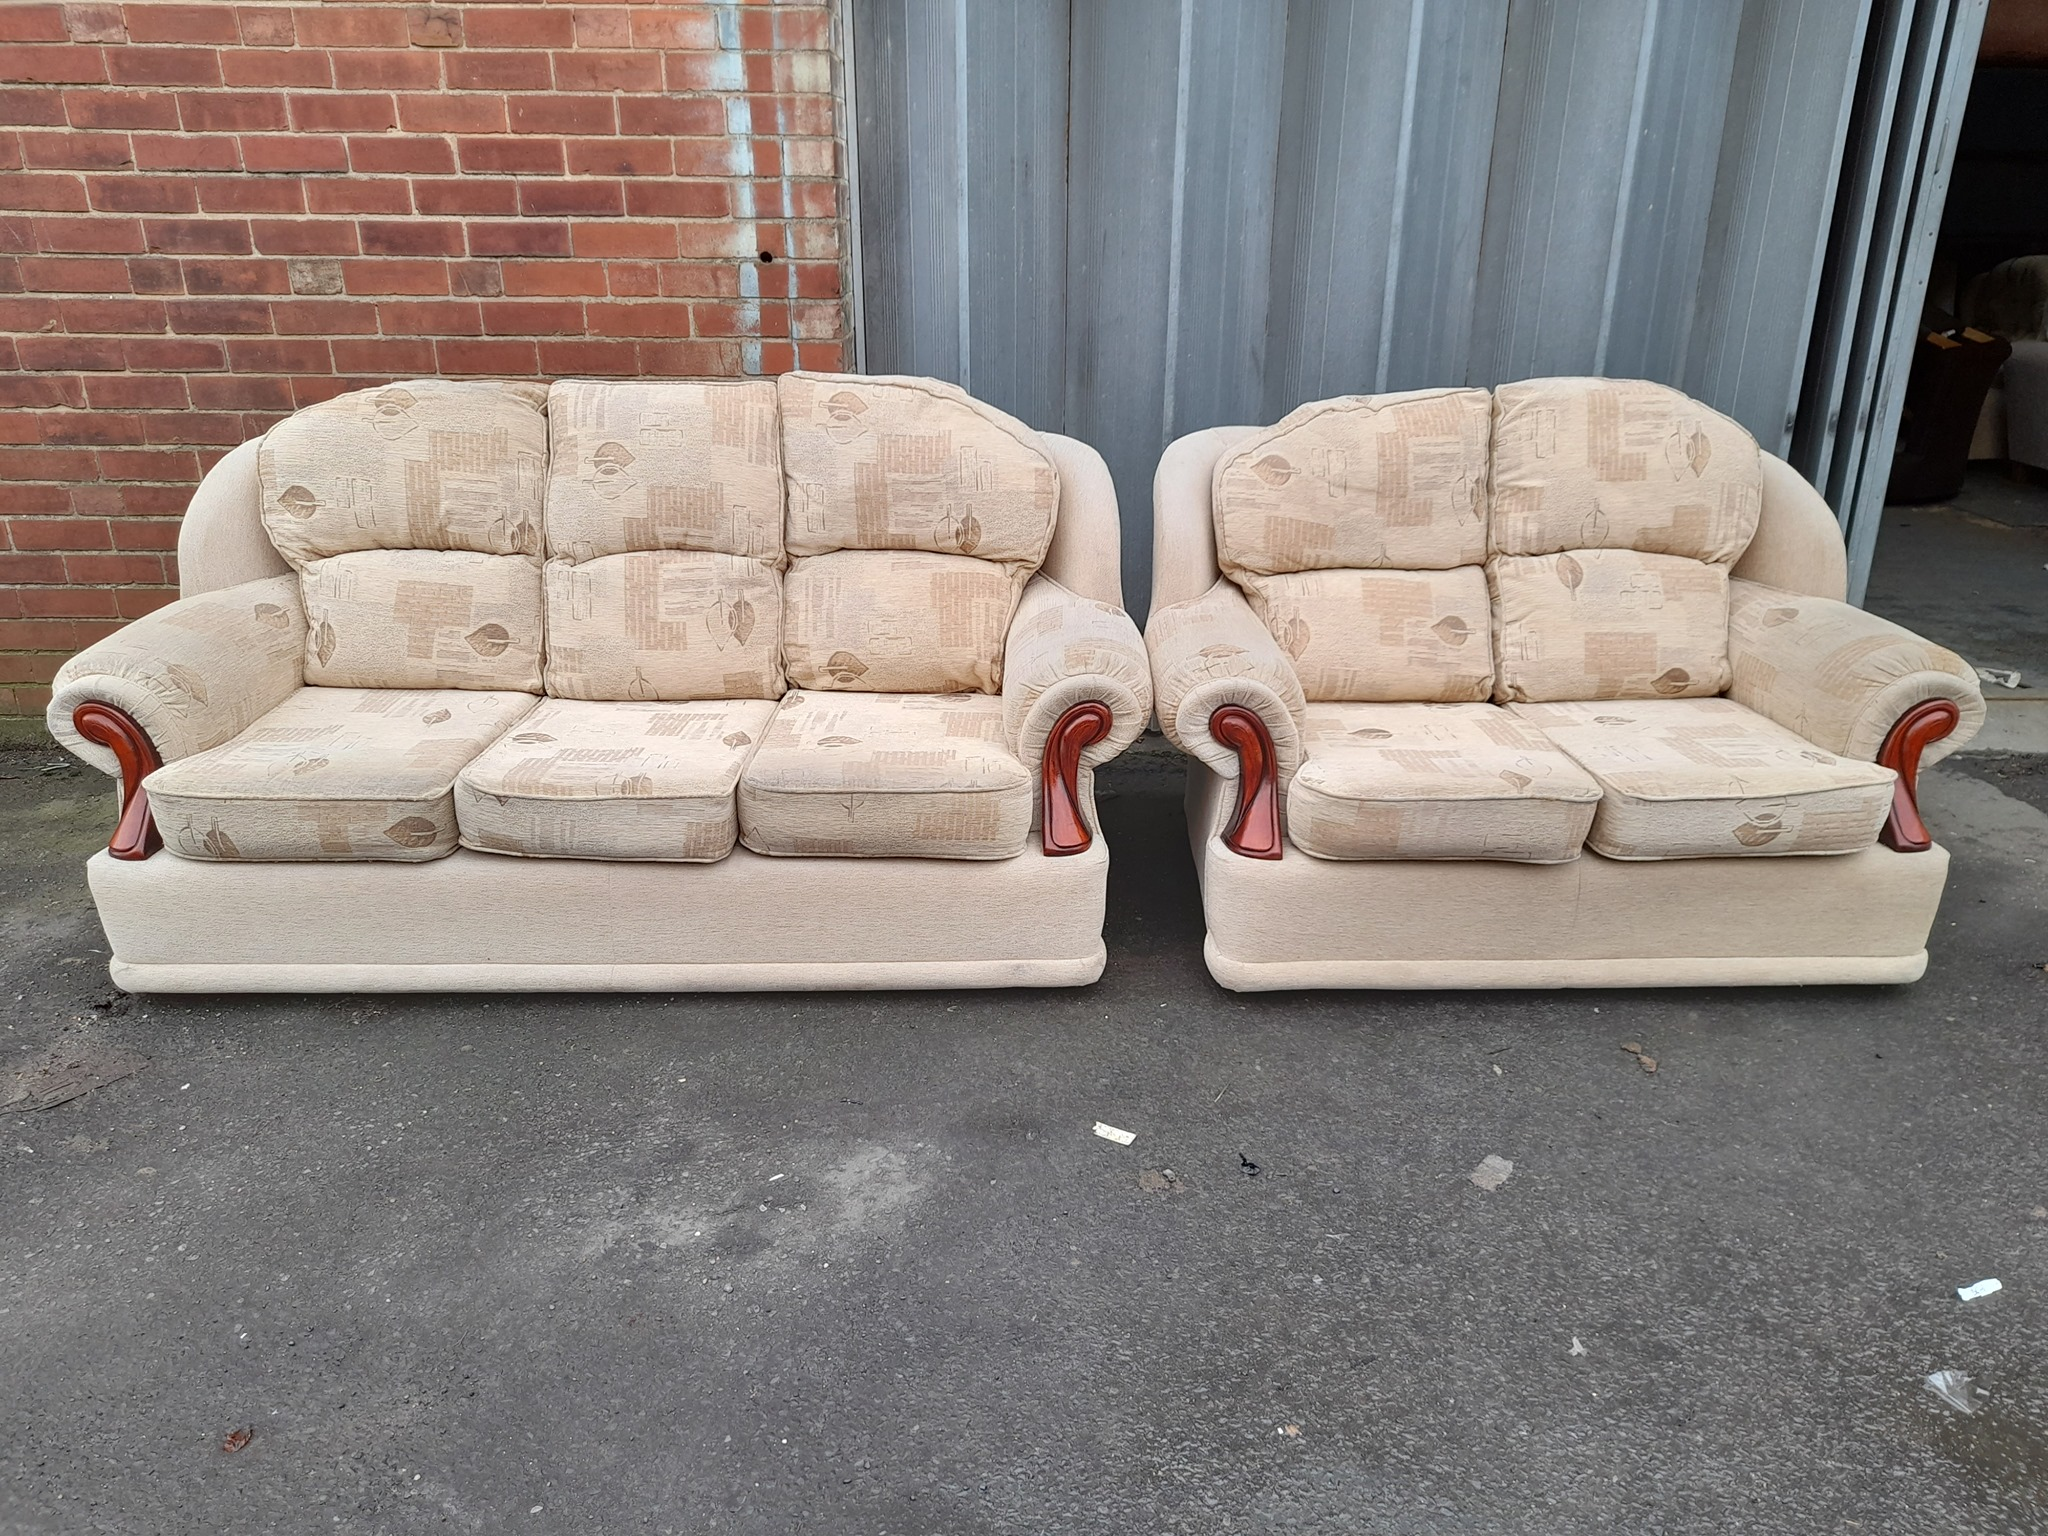 THREE AND TWO SEATER SOFAS £120